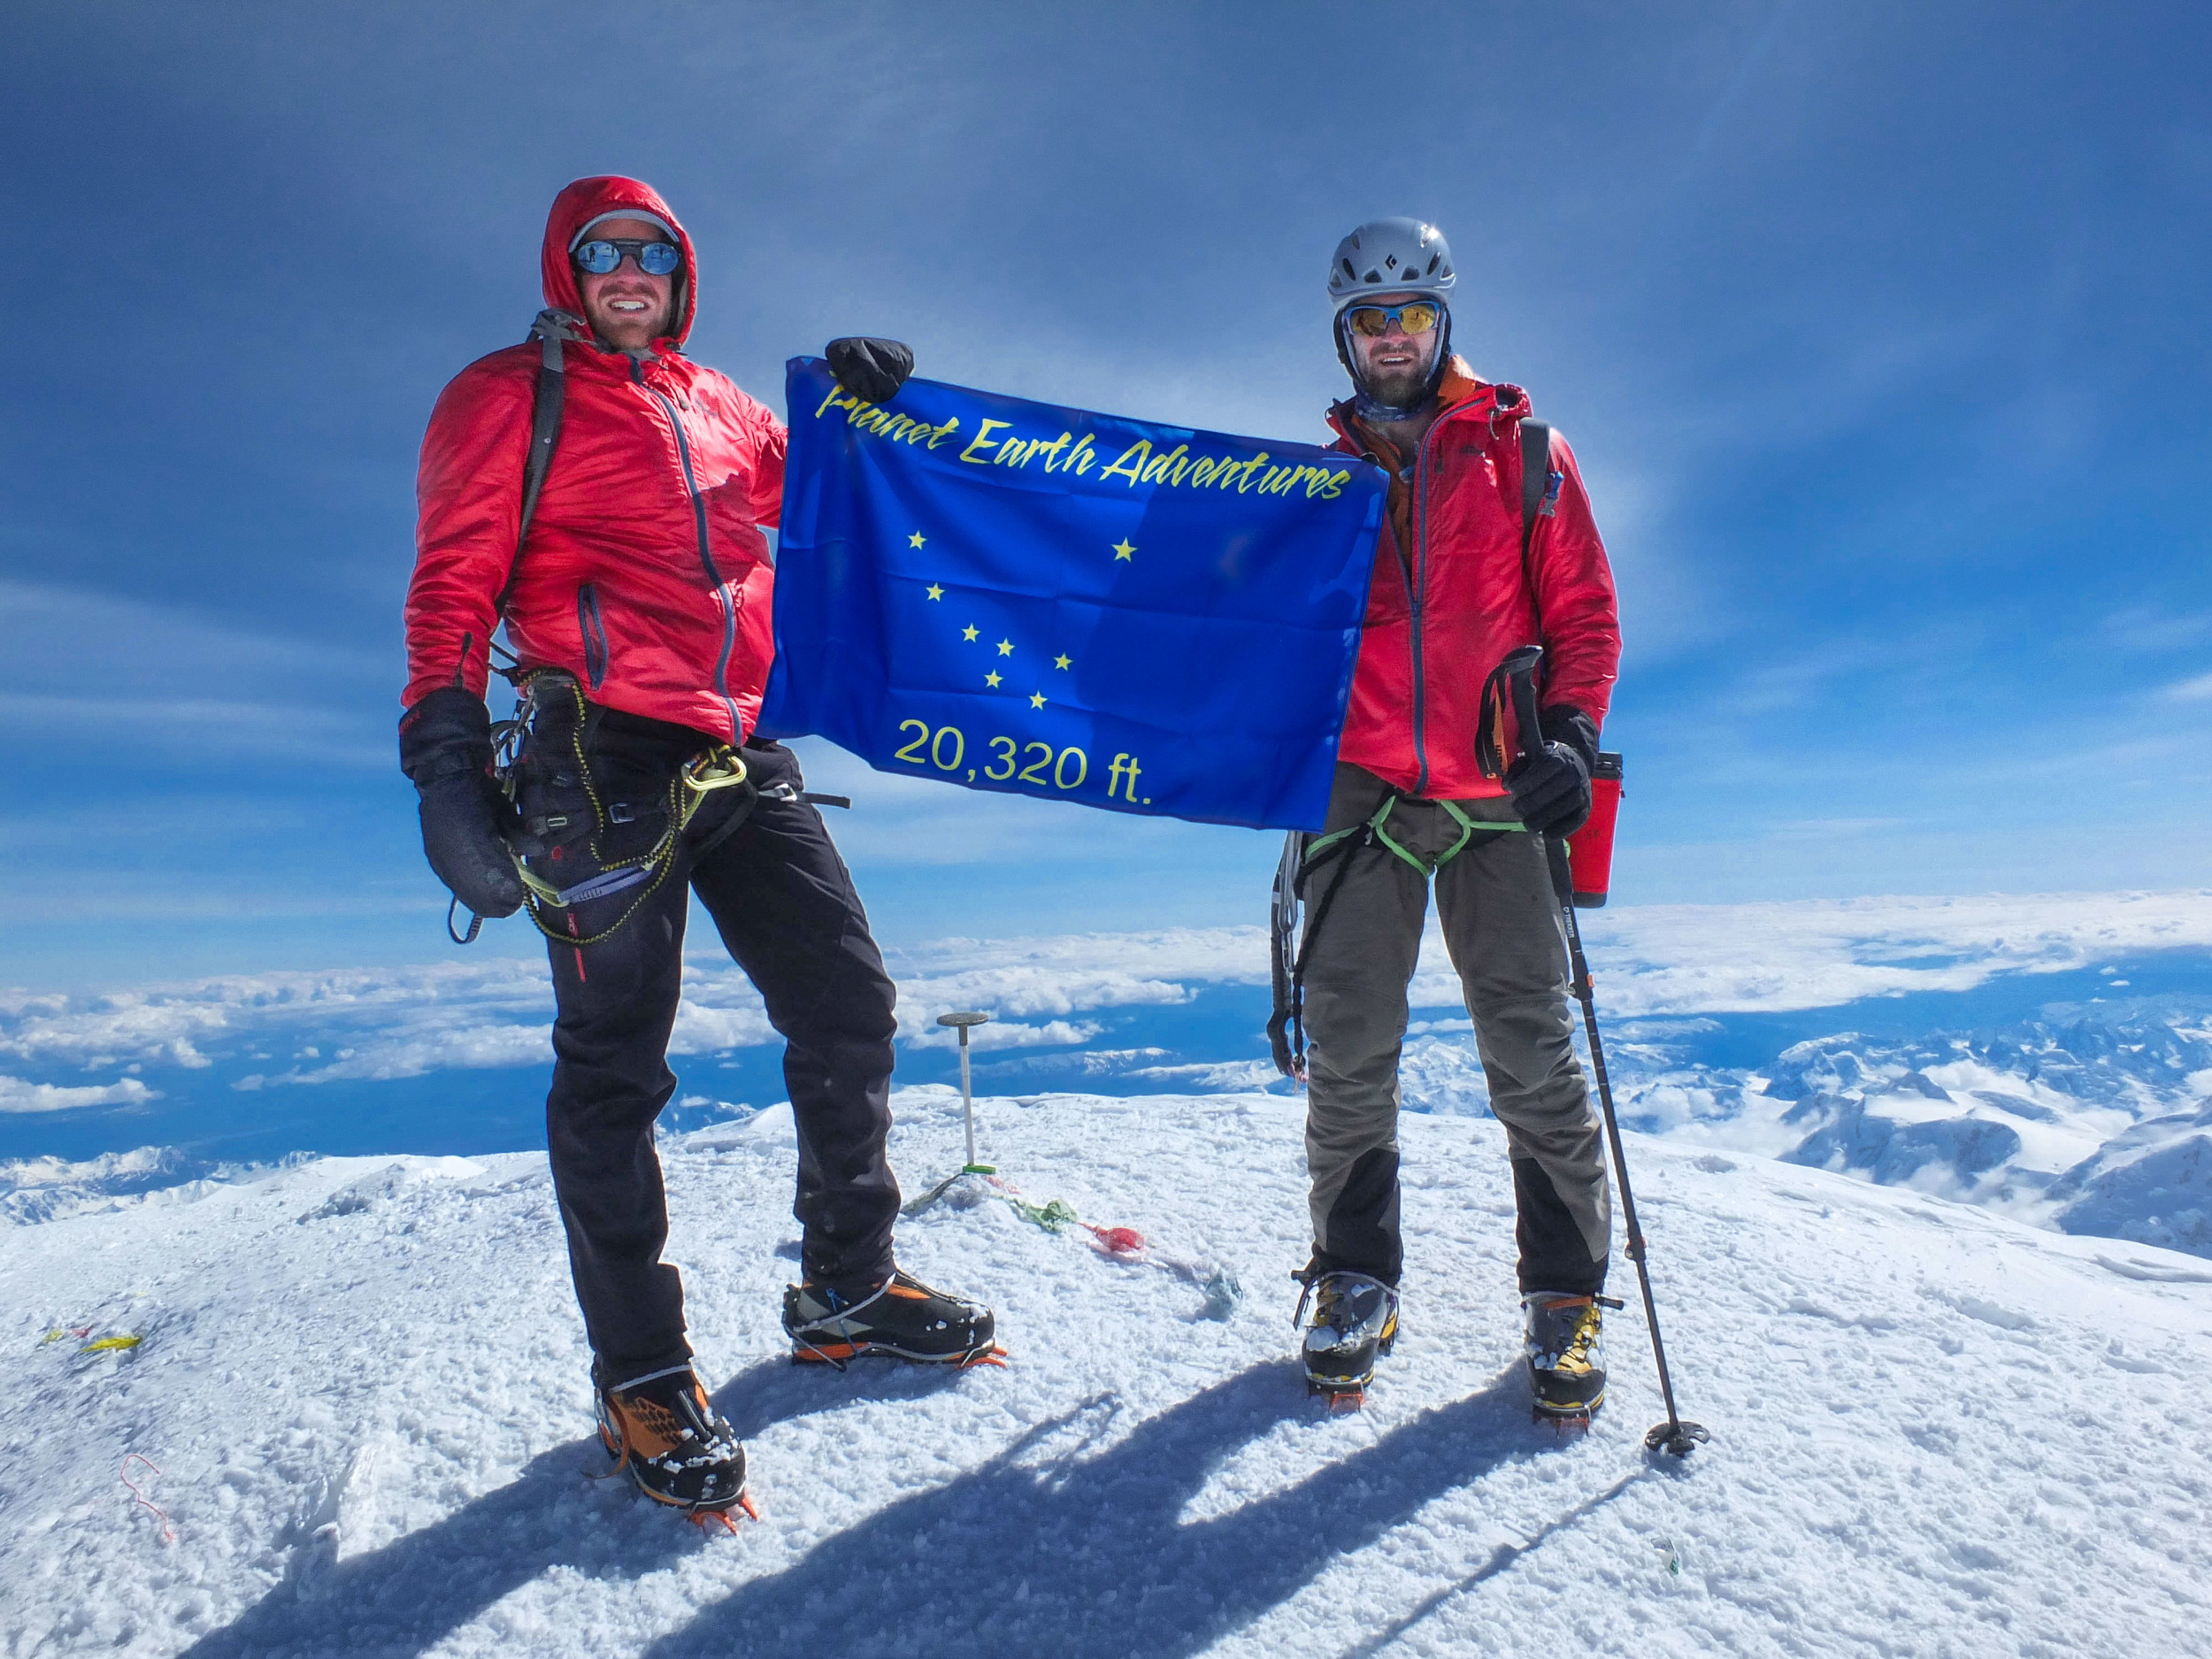 Standing on Denali's summit, Daniel Joll & Steve Fortune of the New Zealand Alpine Team 2014 Alaska Expedition. Not pictured, Pete Harris, Matthew Scholes and Ari Kingan.